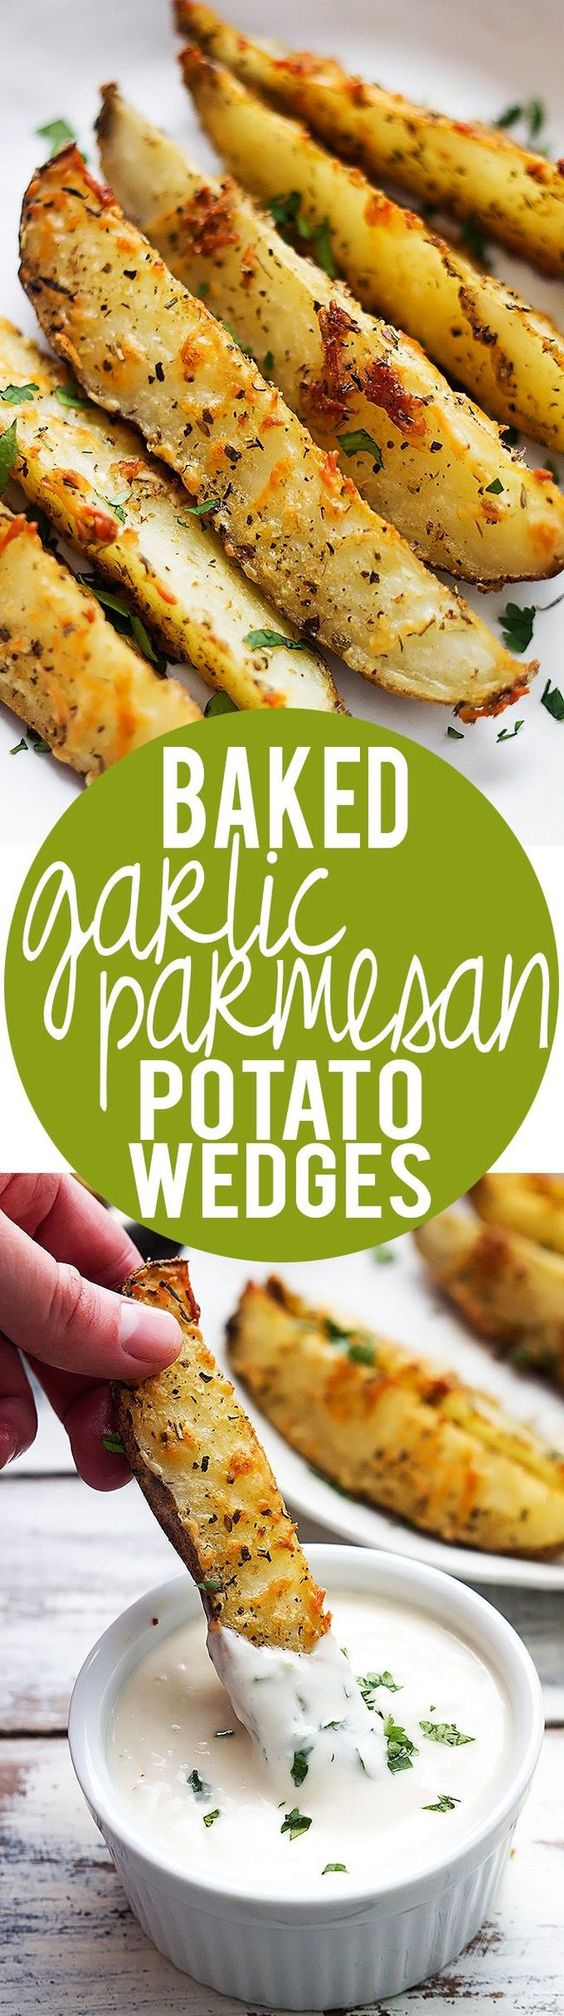 Garlic and parmesan seasoned potato wedges oven roasted to golden tender perfection!: